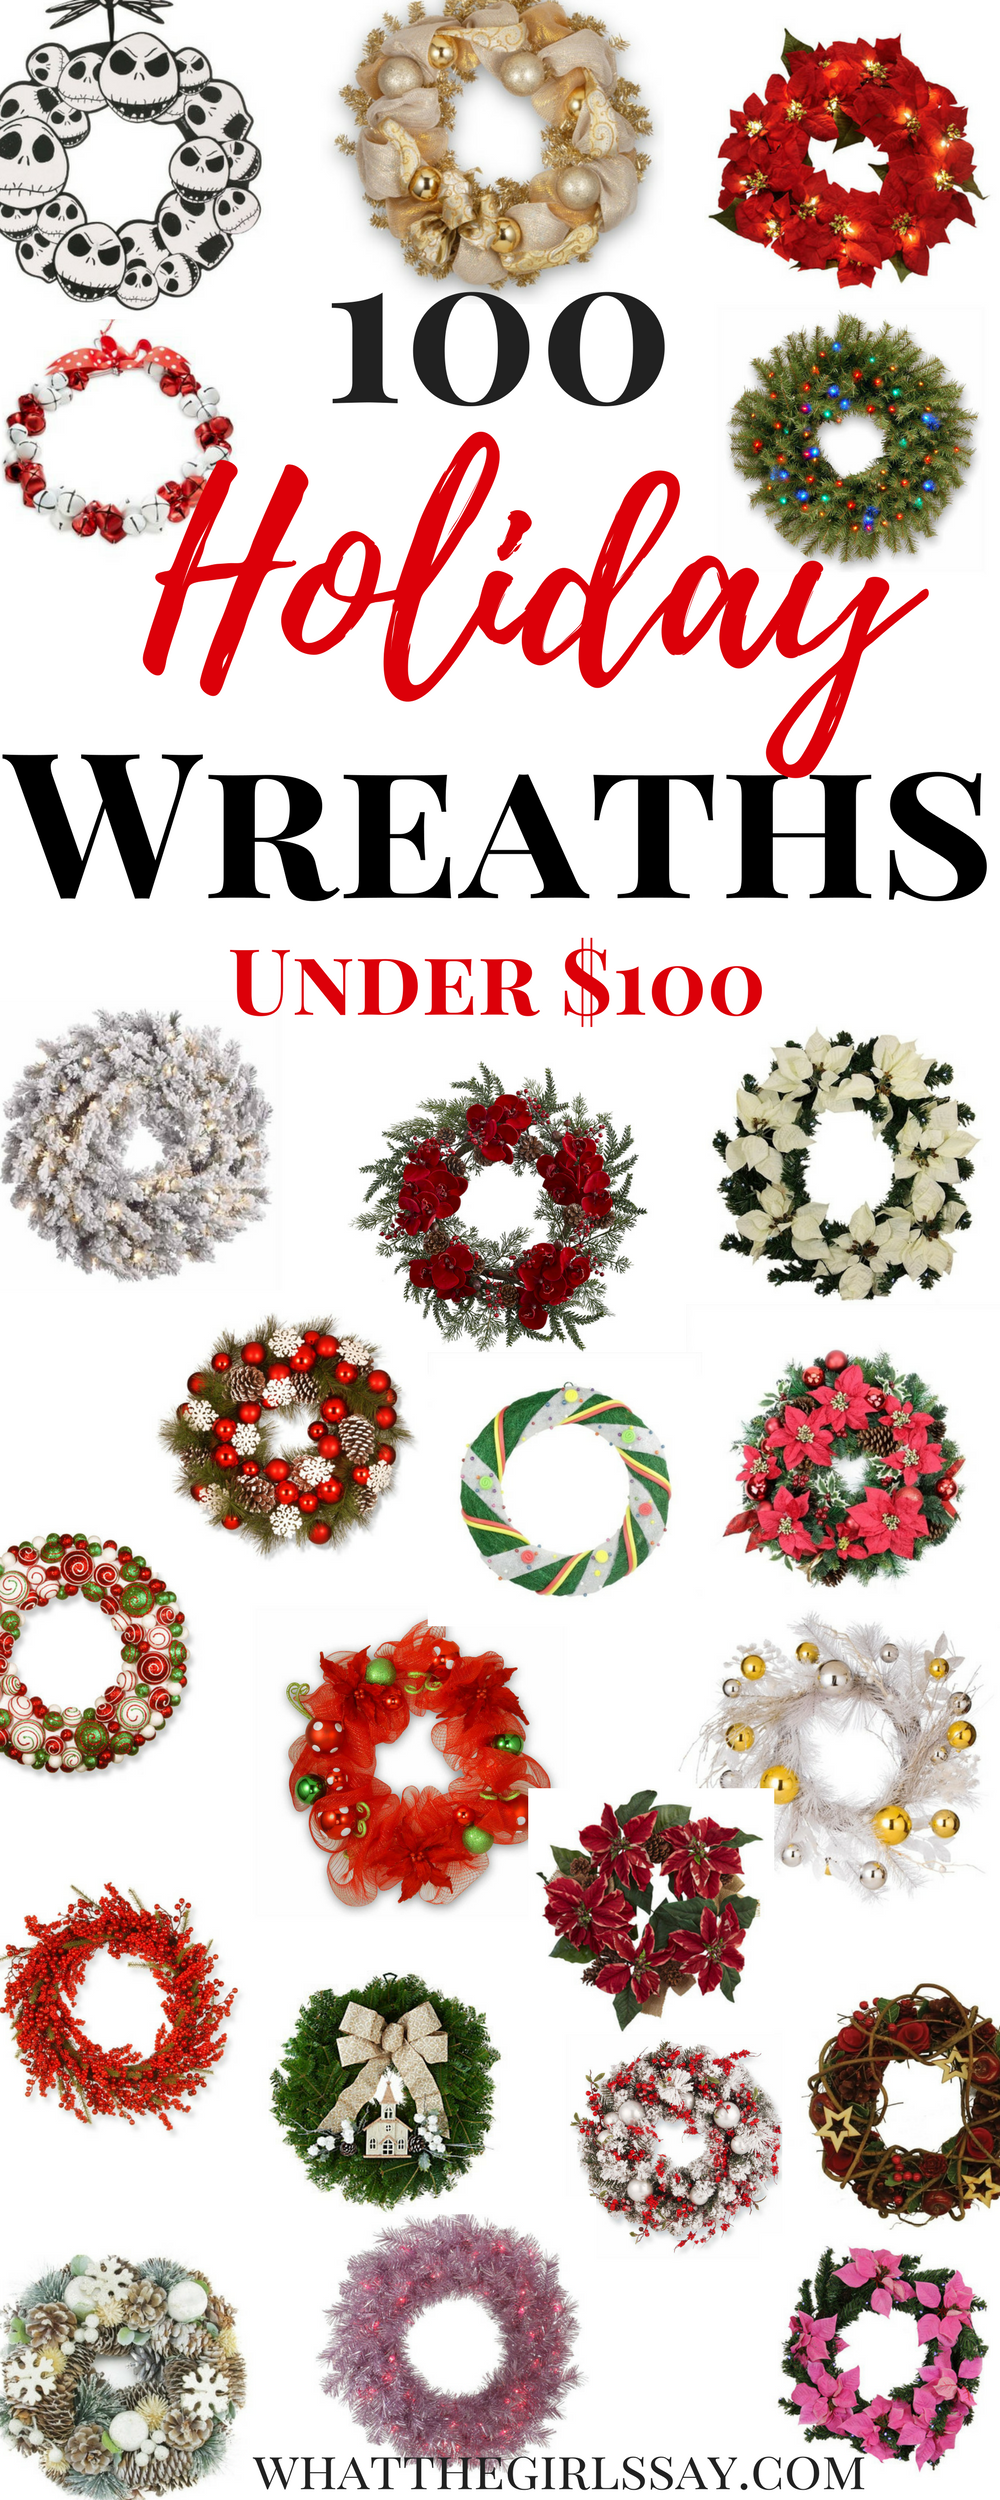 Holiday Wreath Ideas / Christmas Wreath Ideas - Looking for some great Holiday Wreaths for the Front Door? Or just want to do a Christmas Wreath DIY? Here are some ideas to get your creativity flowing. Christmas Decor Ideas - Holiday Decor Ideas. It's time to decorate for Christmas, these Front Door Wreaths are great ideas to find inspiration to make your own Christmas or Holiday Wreath yourself!